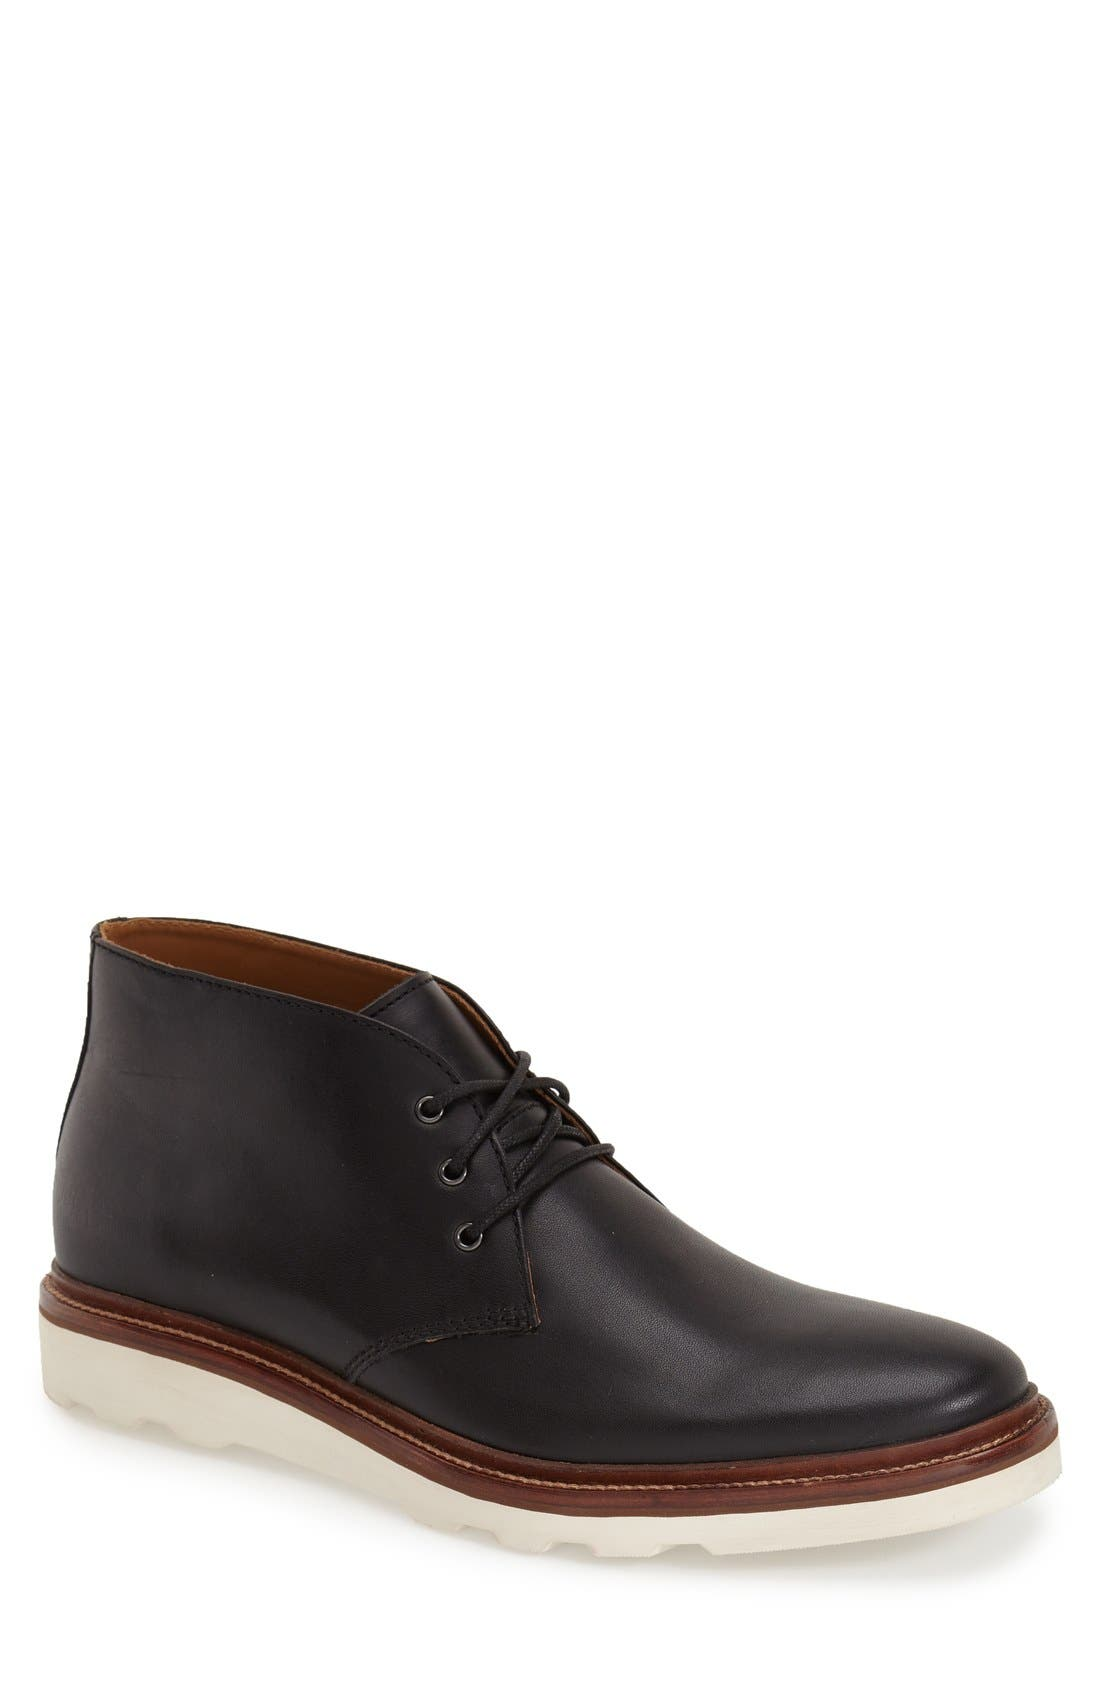 COACH,                             'Bedford' Chukka Boot,                             Main thumbnail 1, color,                             001